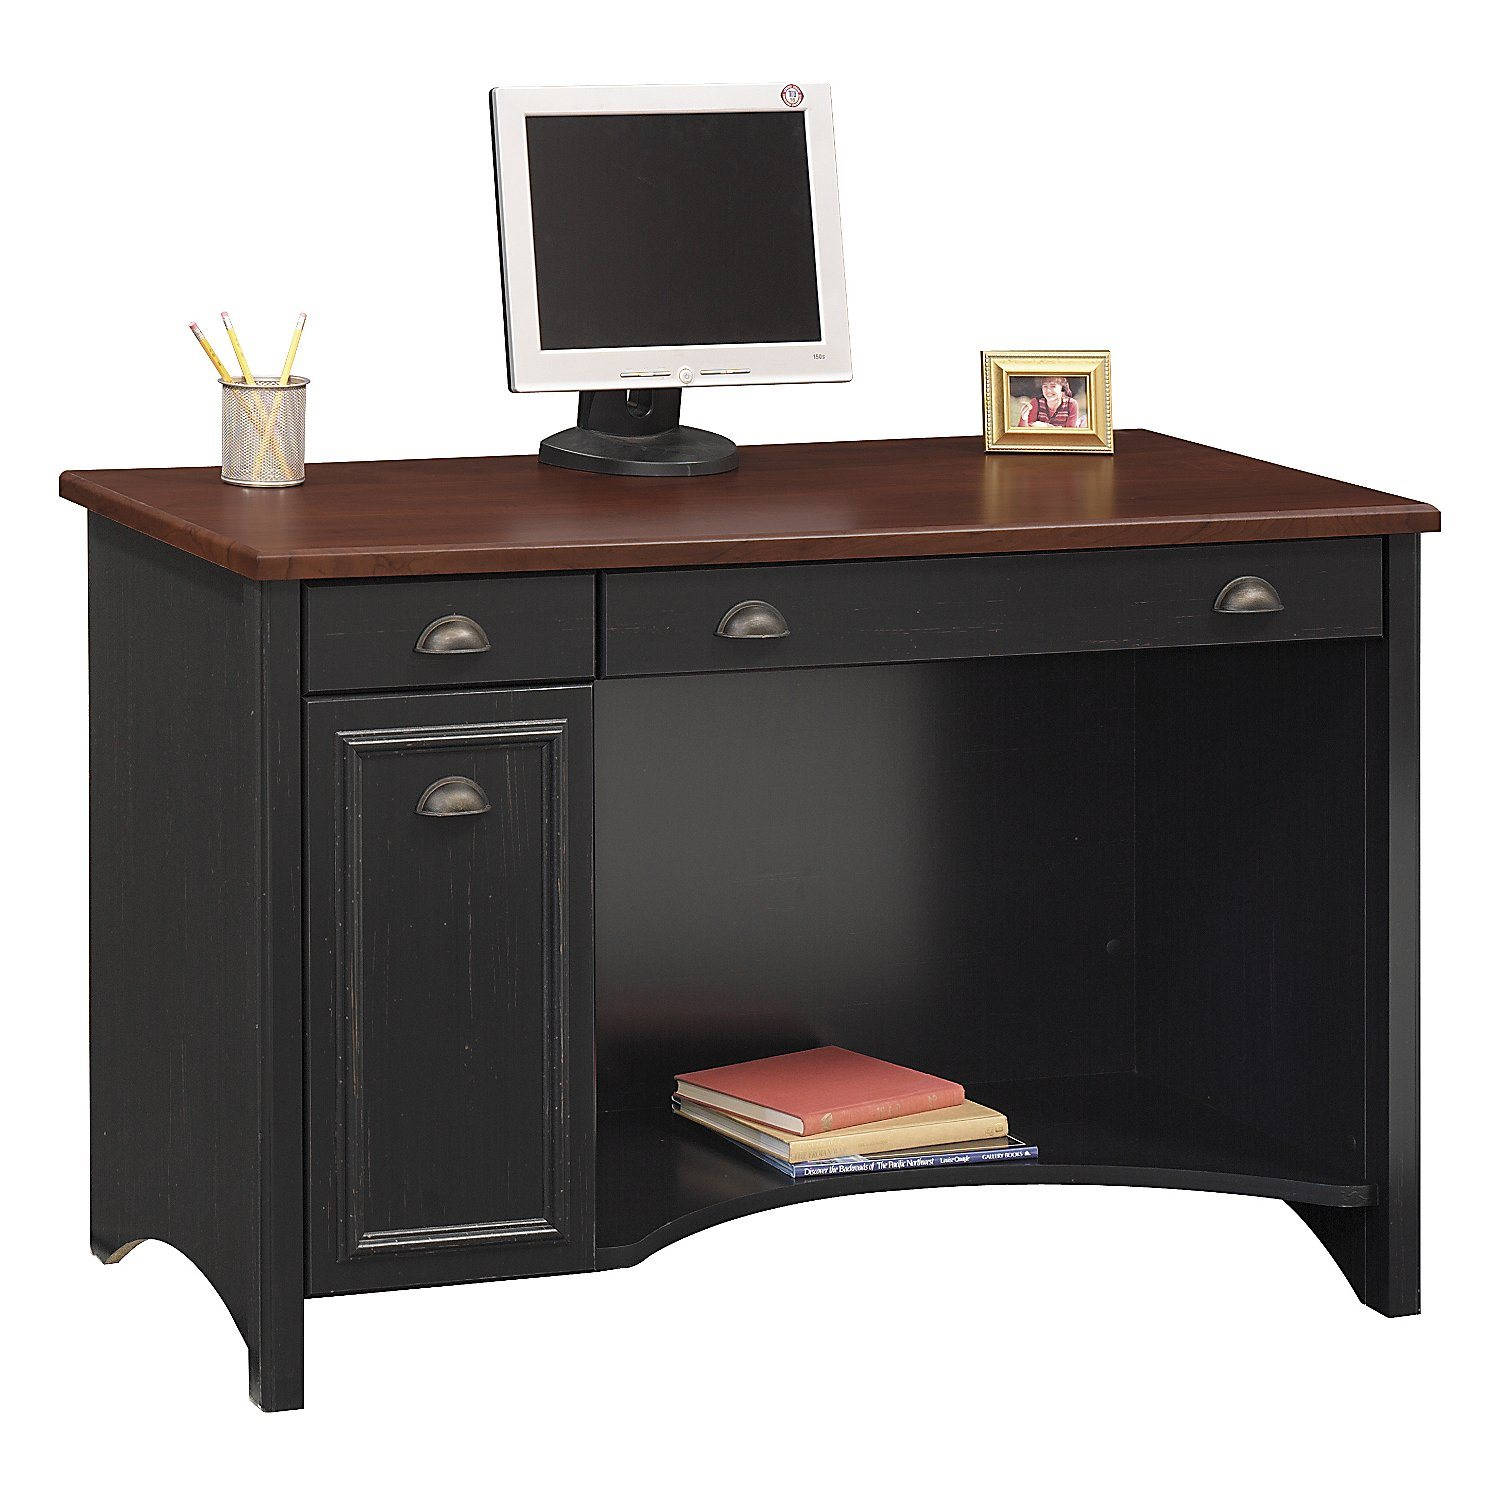 Bush Furniture Wc53918 03 Computer Desk Bush Wc53918 03